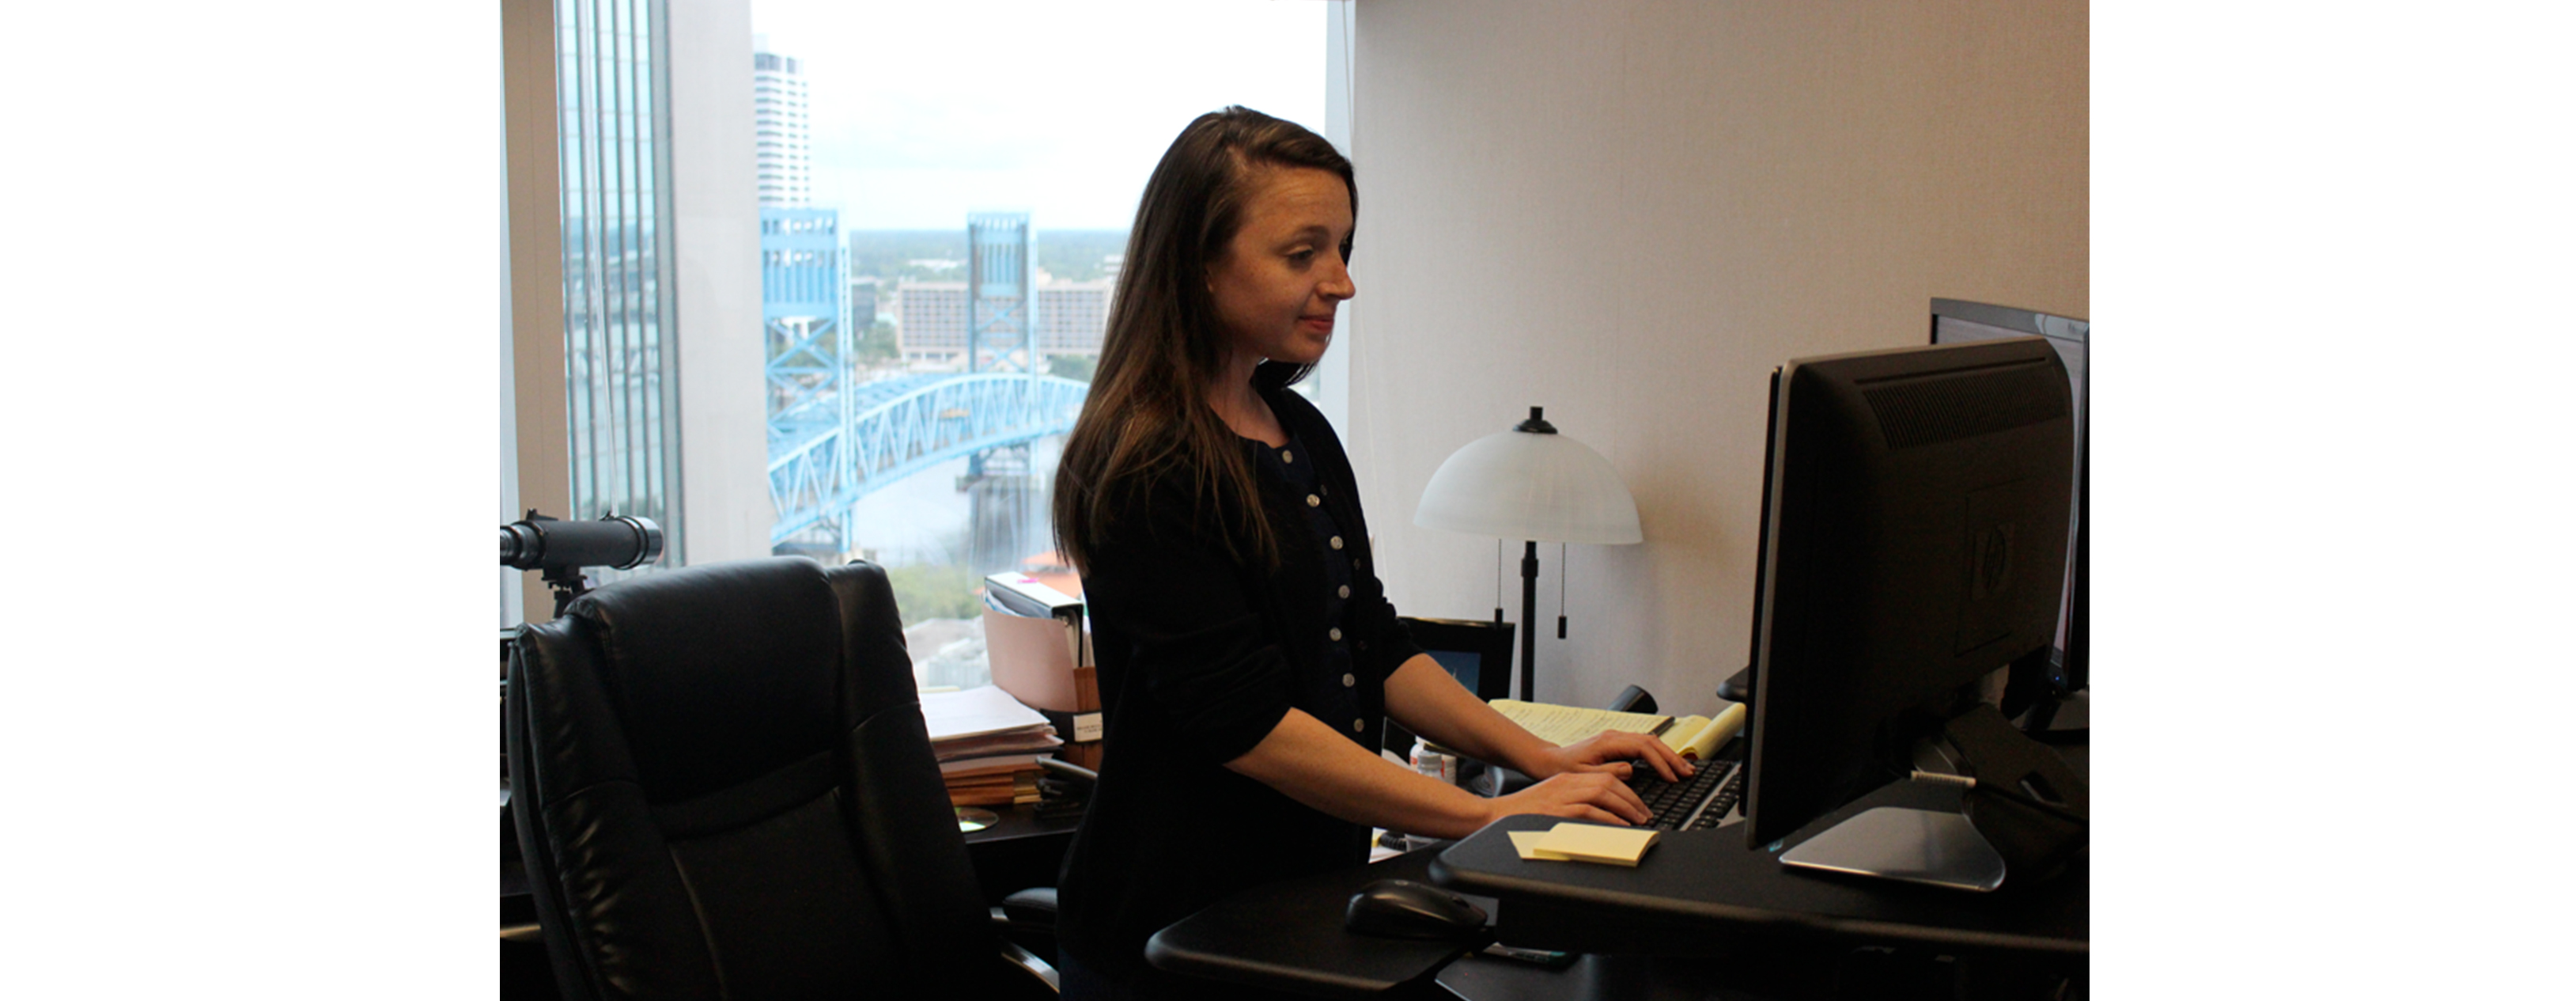 A young businesswoman is using a stand up desk in an office setting